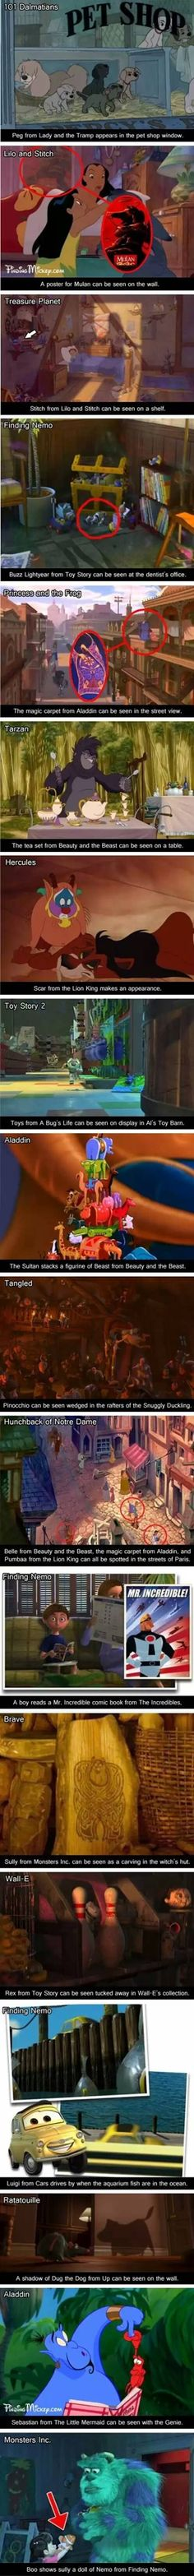 Disney characters in Disney movies that aren't their own. Disneyception.